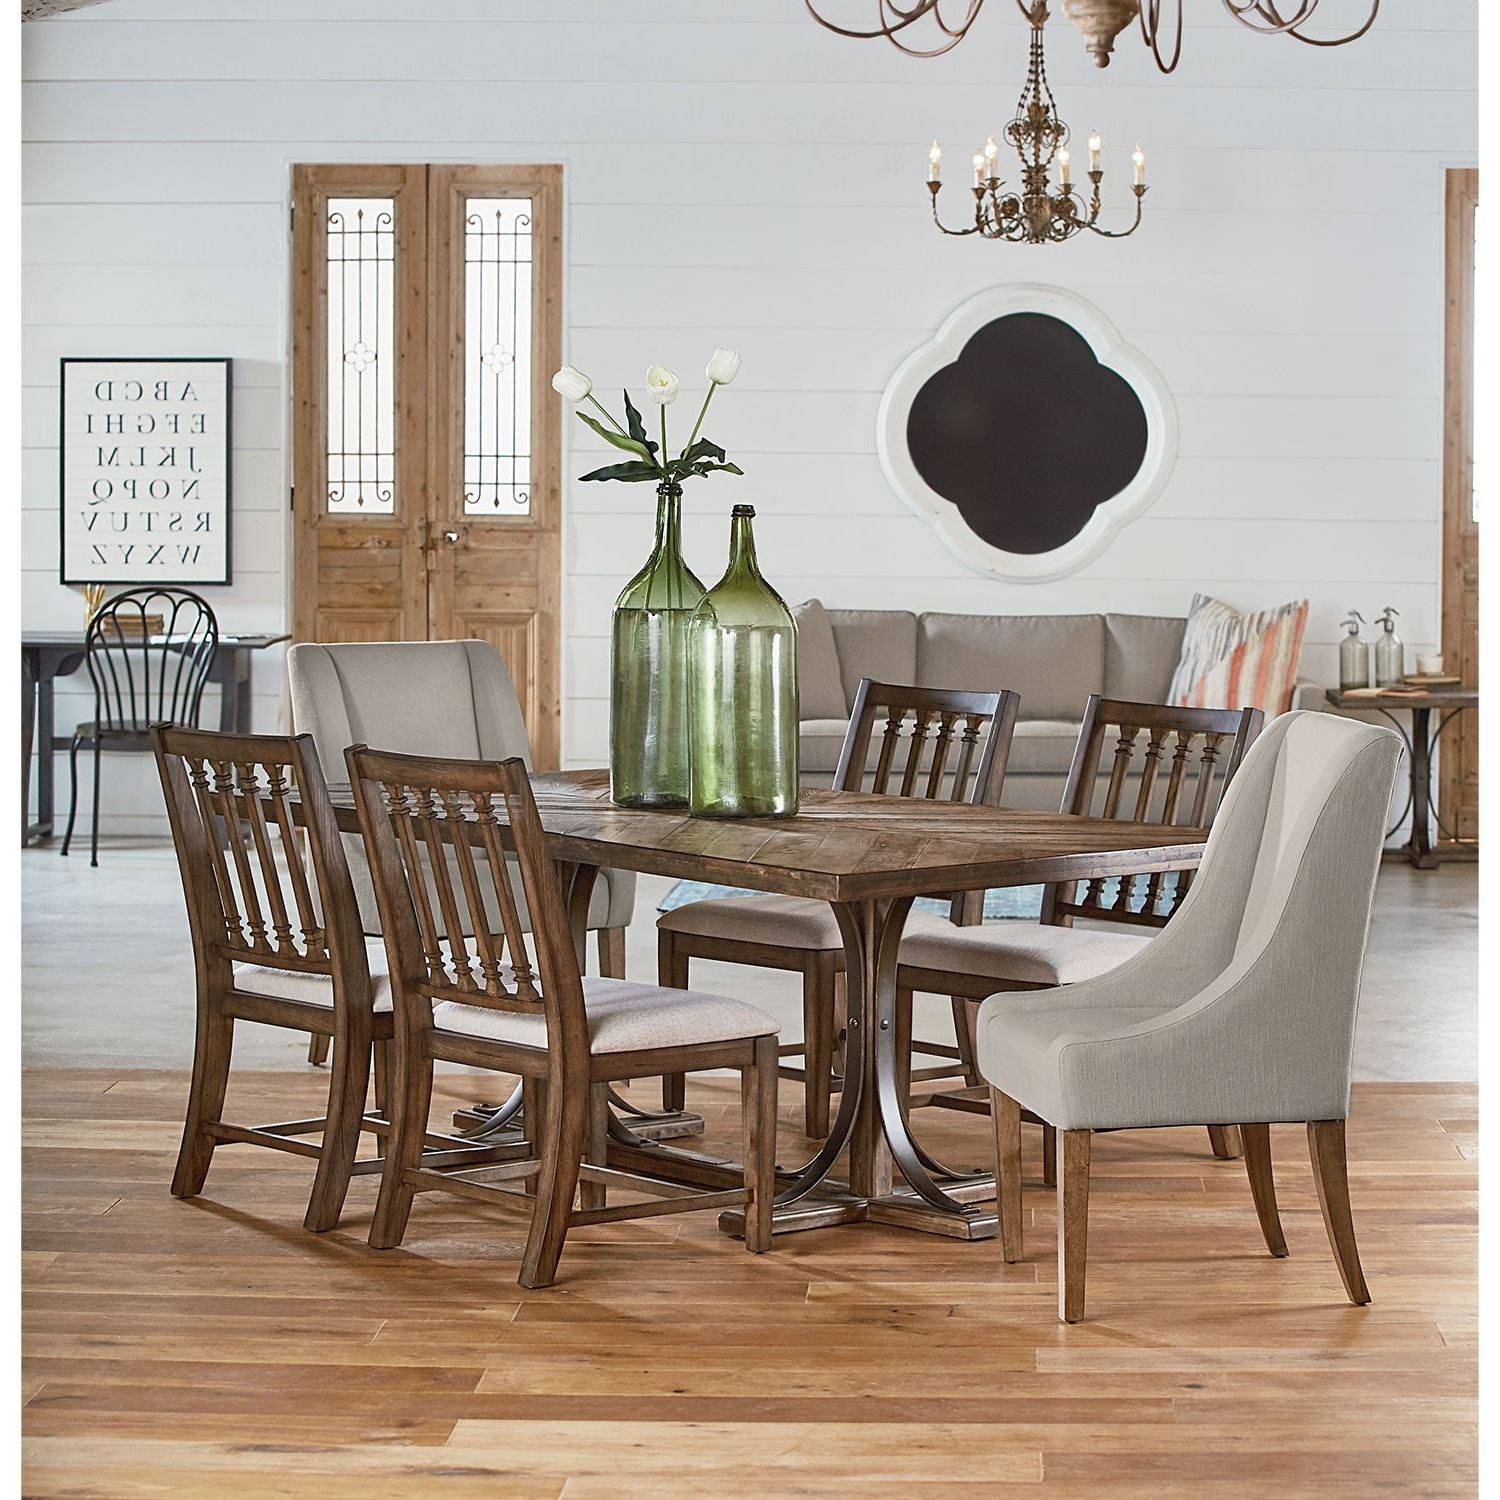 Magnolia Home Trestle Dining Table Awesome Small Solid Wood Dining Throughout Most Up To Date Magnolia Home Sawbuck Dining Tables (View 2 of 25)